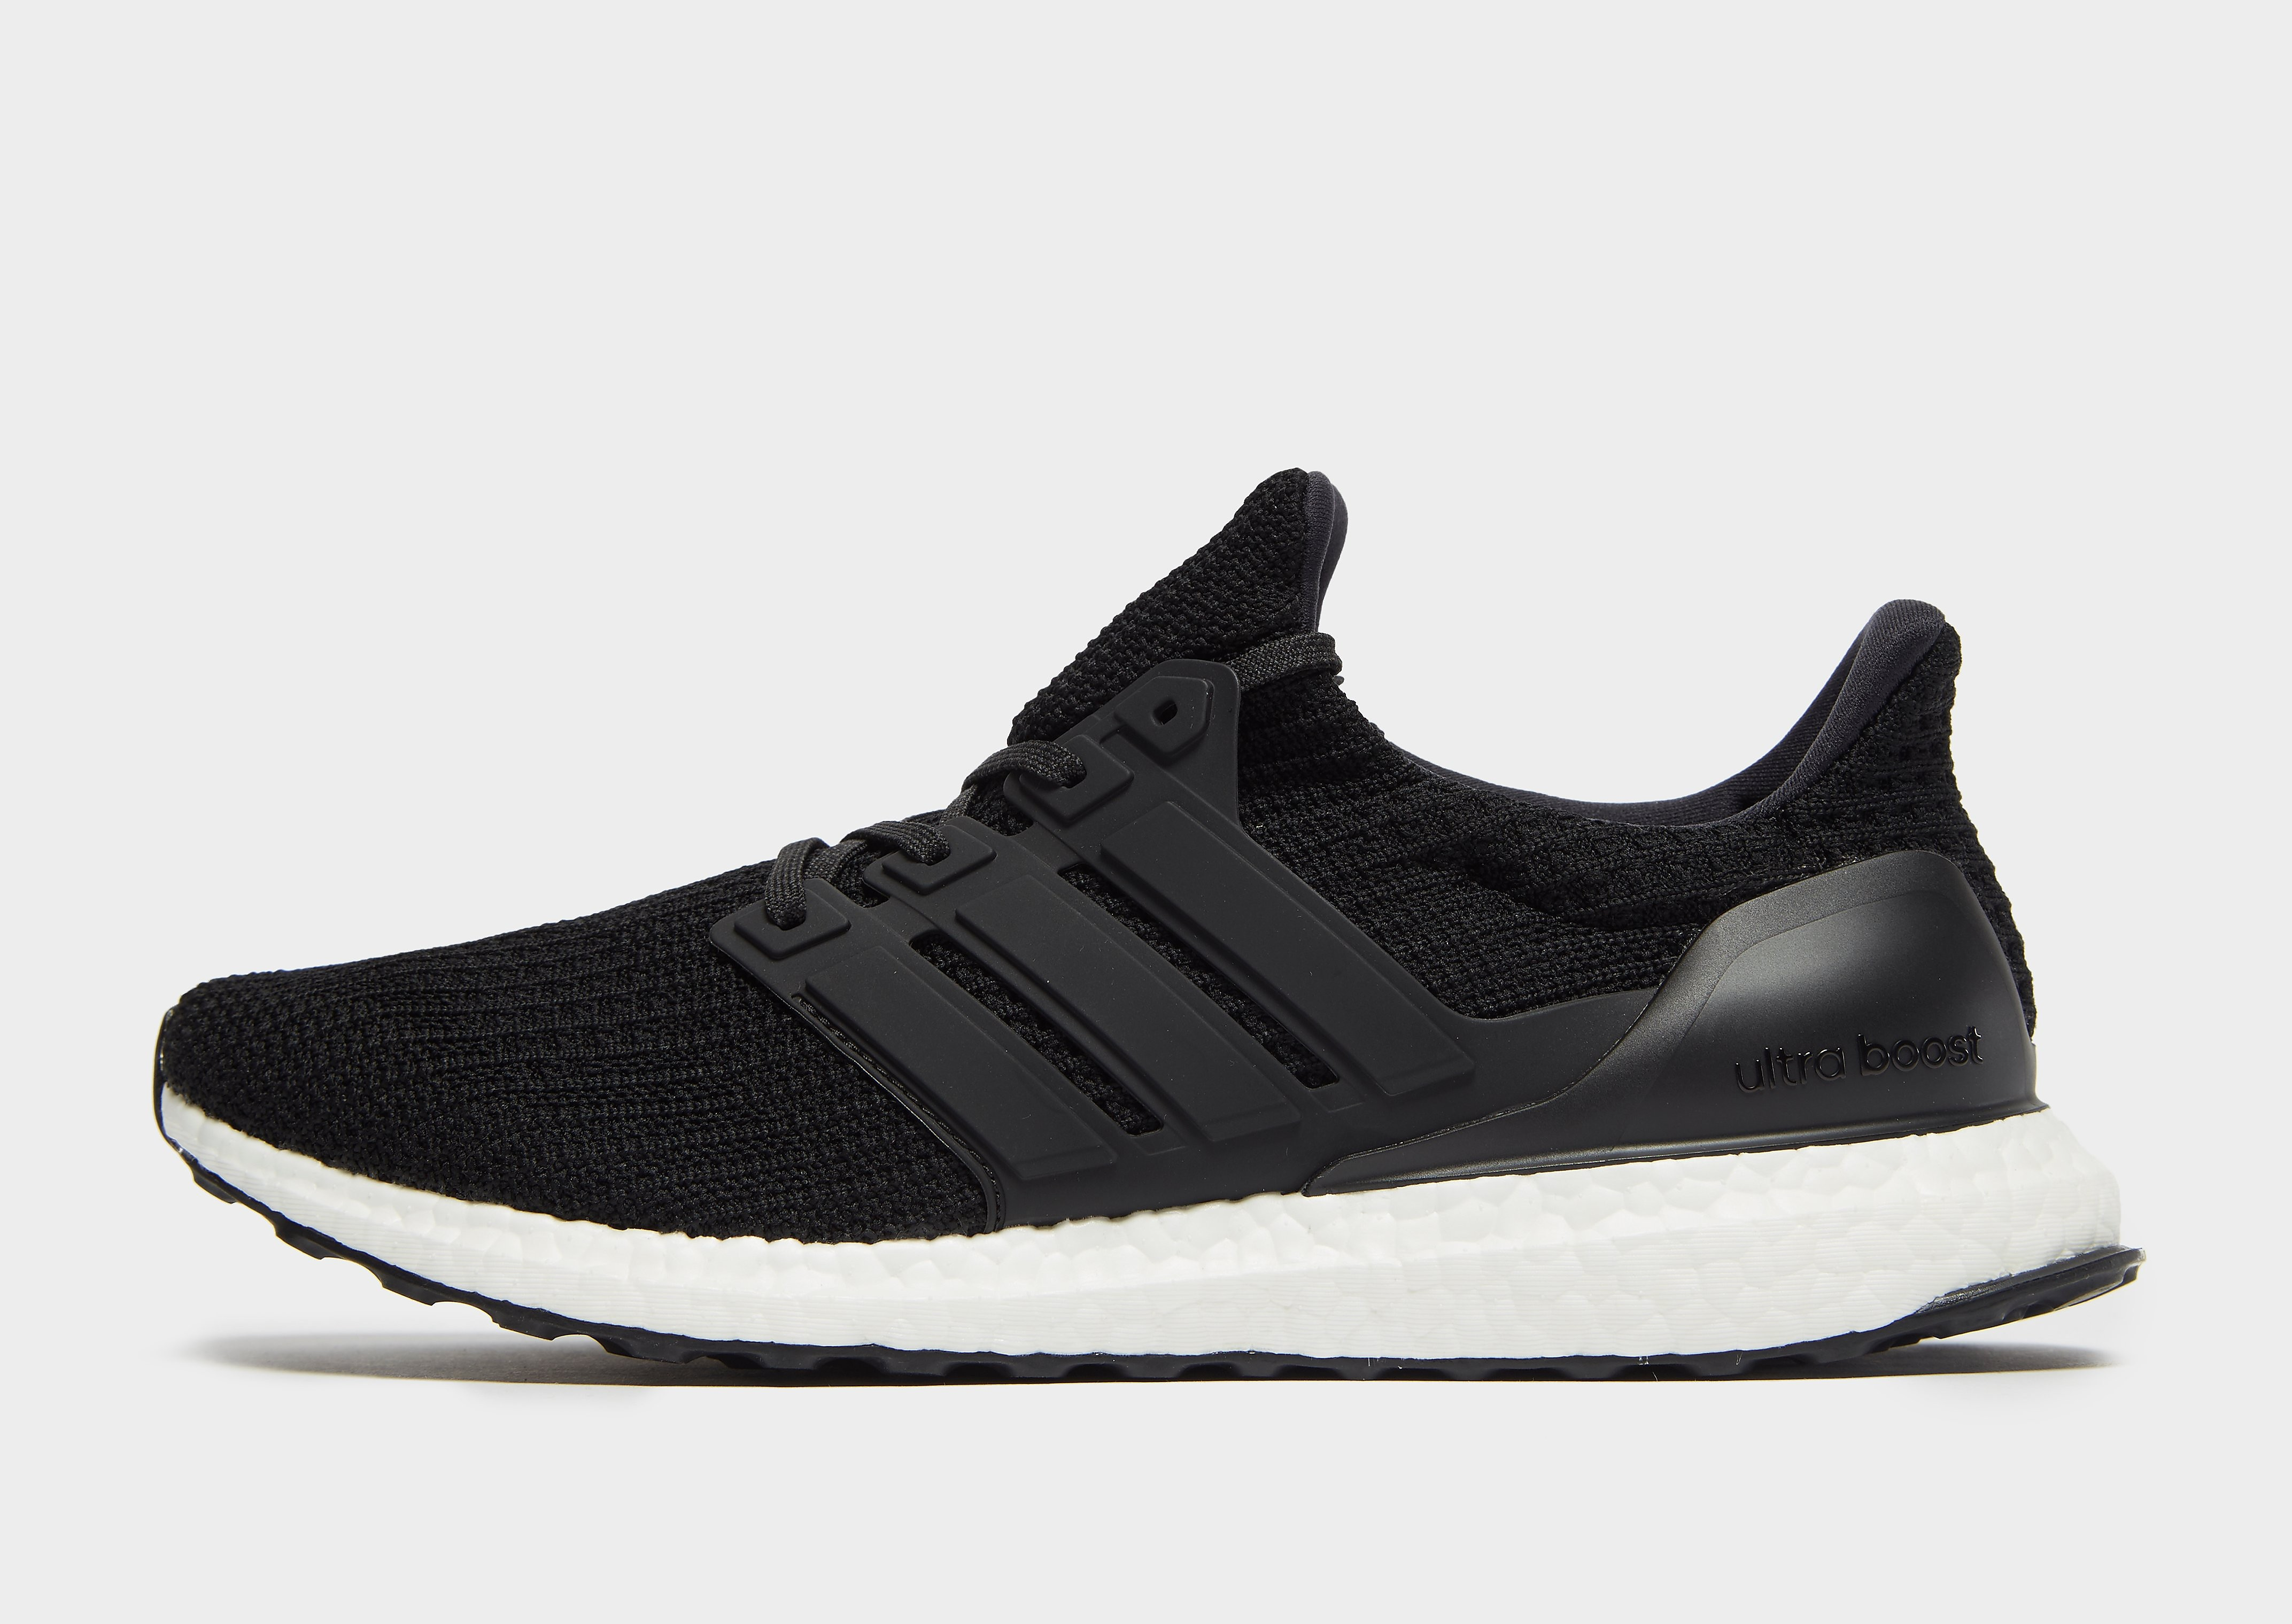 adidas Ultra Boost Schwarz-Weiß - Black/White - Mens, Black/White